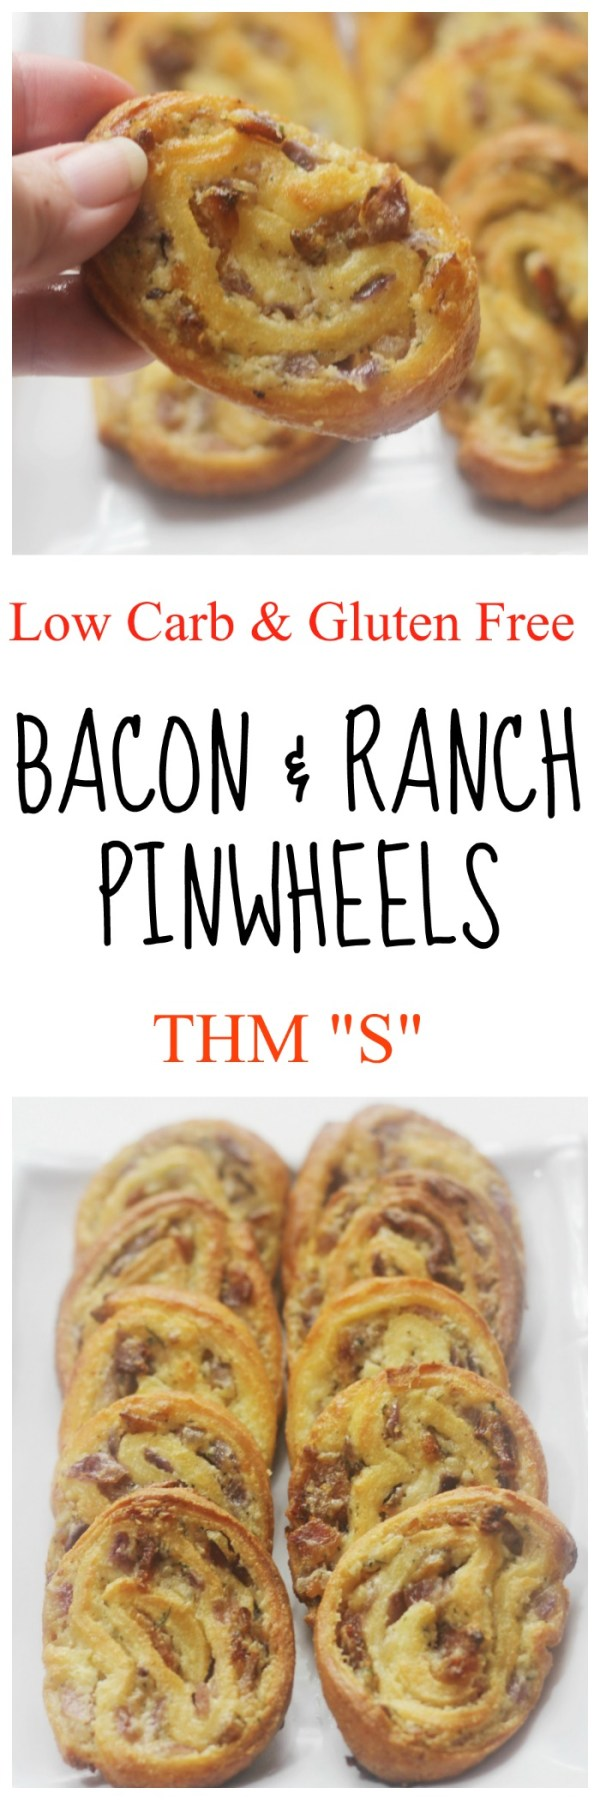 Bacon & Ranch Pinwheels || Low Carb, Gluten and Grain Free, THM, Low Carb Party Food